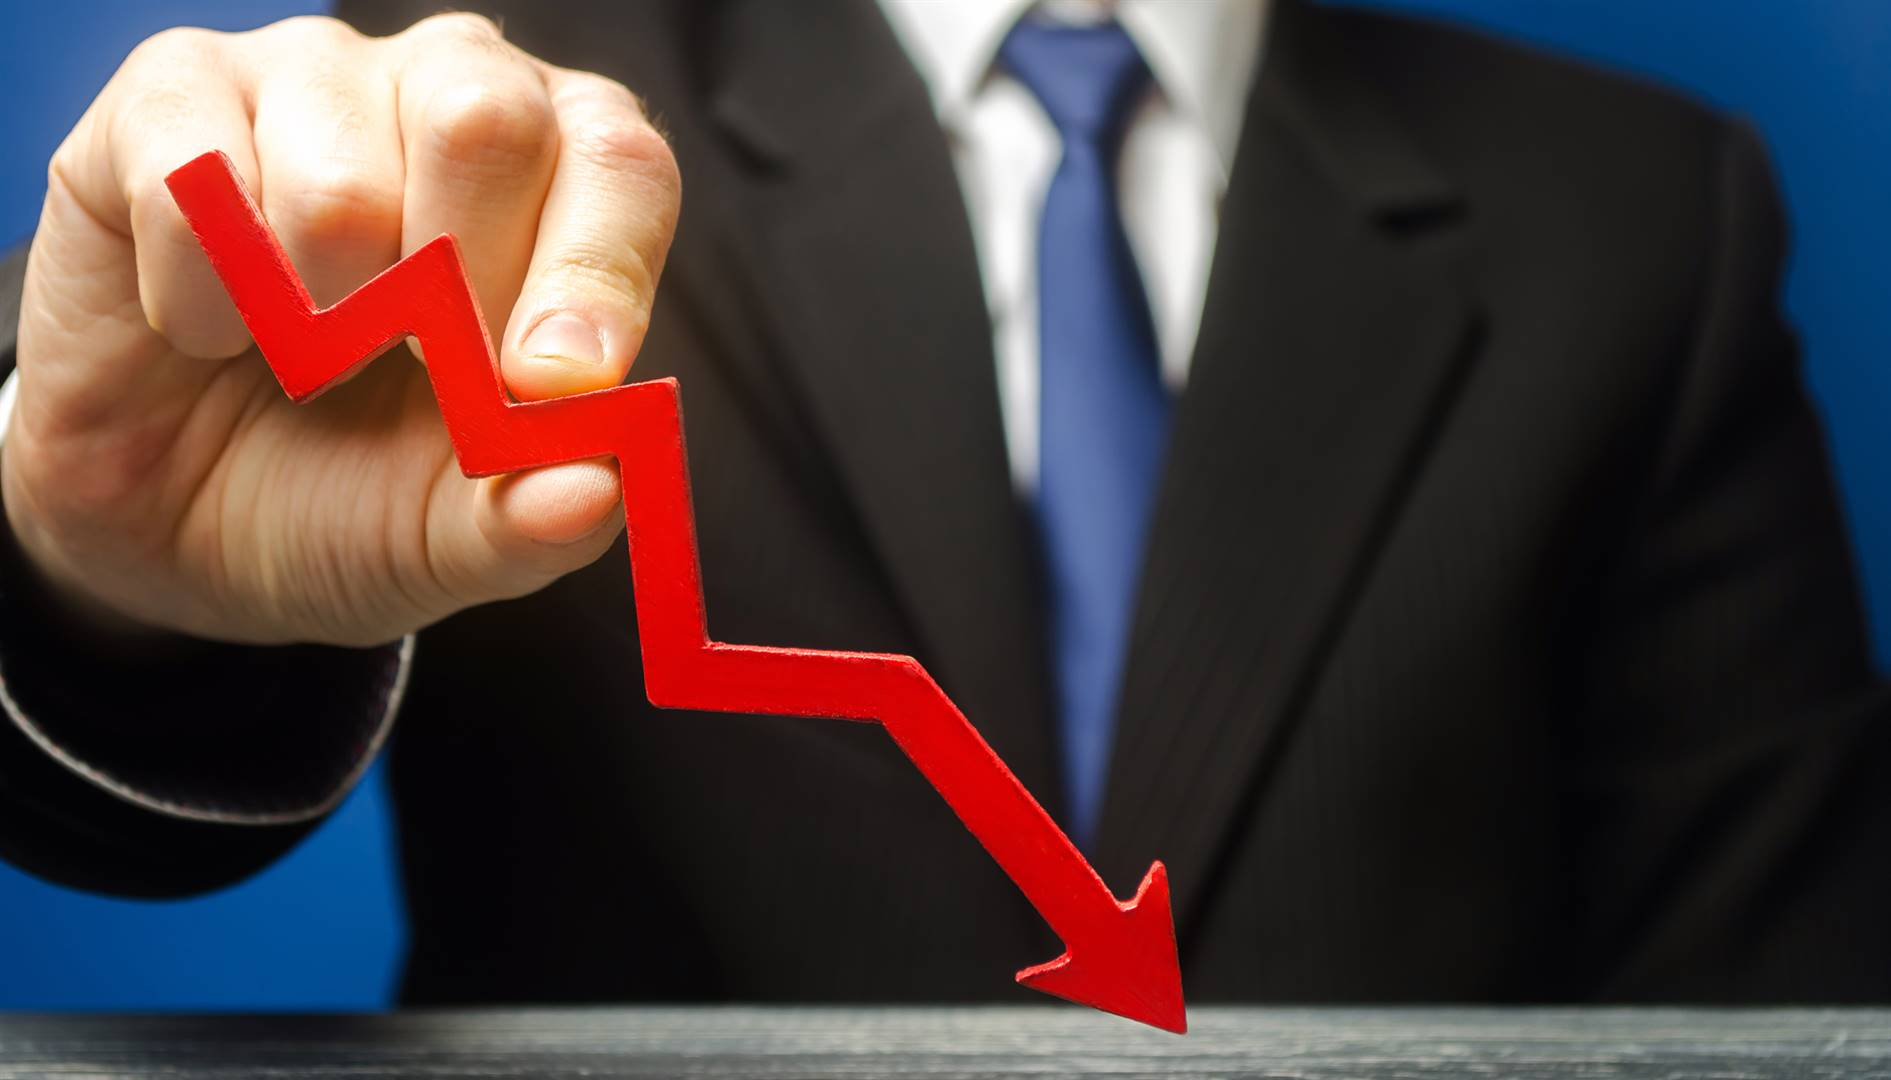 DGP growth for last year was dire and Covid-19 shutdowns affected economic activity. However, there was a sharp rebound in the fourth quarter of 2020. Picture: iStock